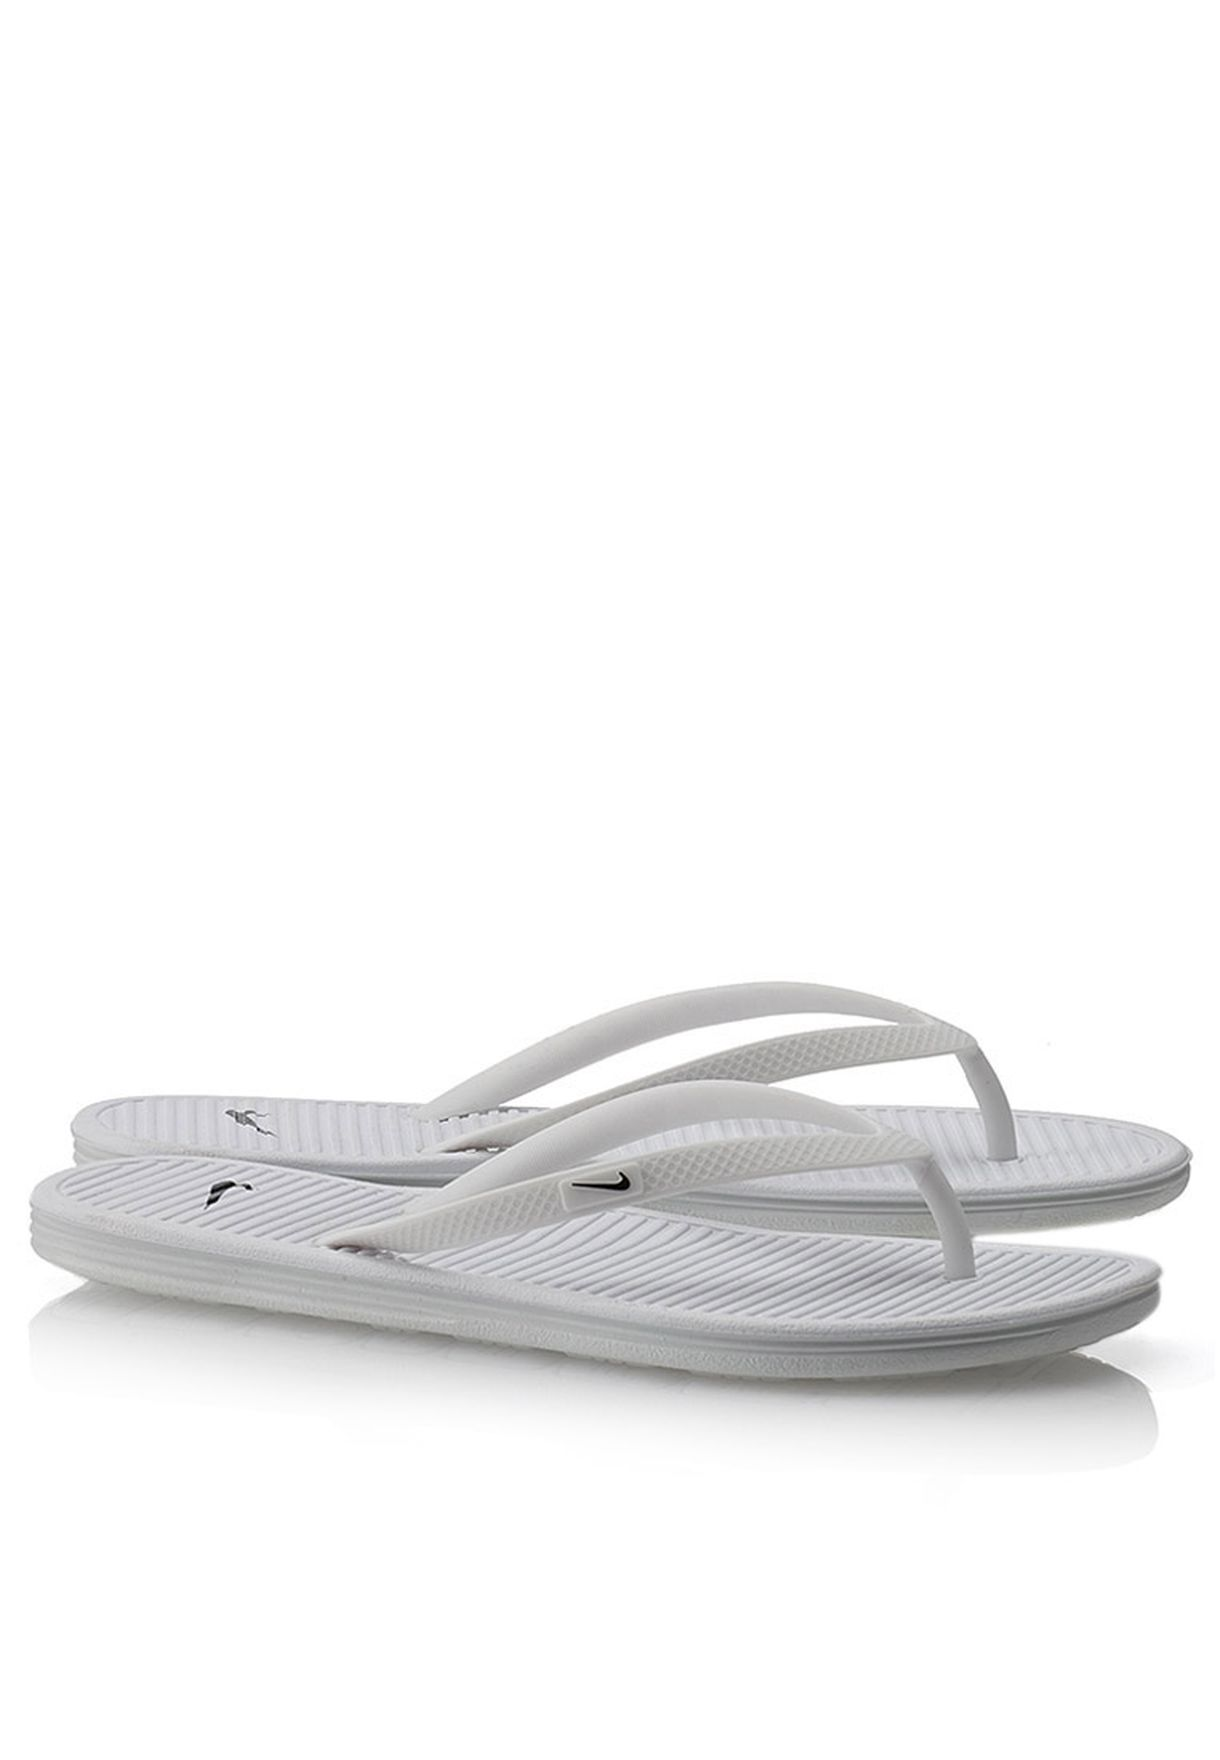 f66892a34aeb Shop Nike white Solarsoft Thong II Flip Flops 488161-103 for Women ...